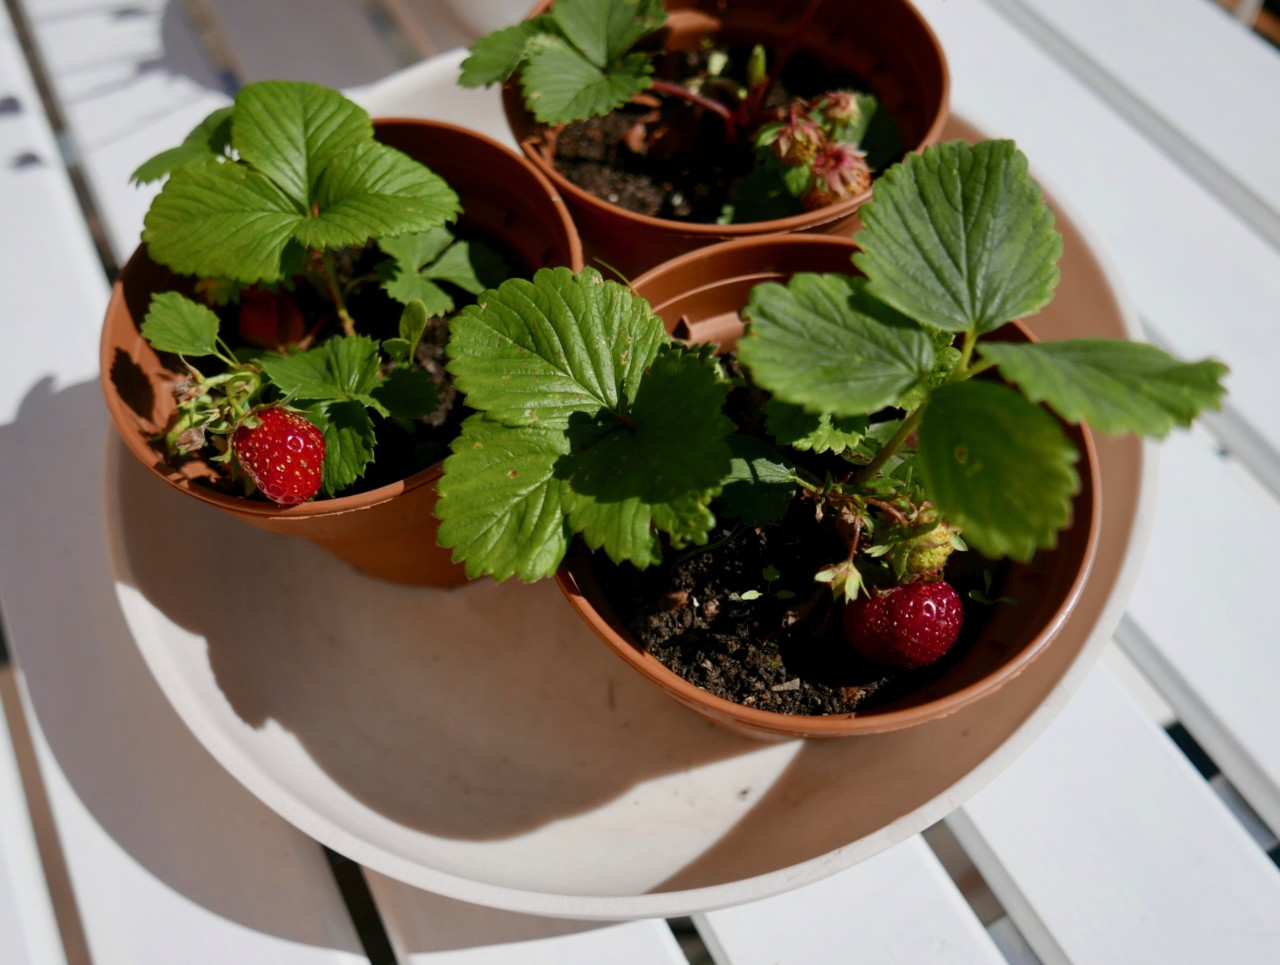 okologiske-jordbær-organic-strawberries-green-house